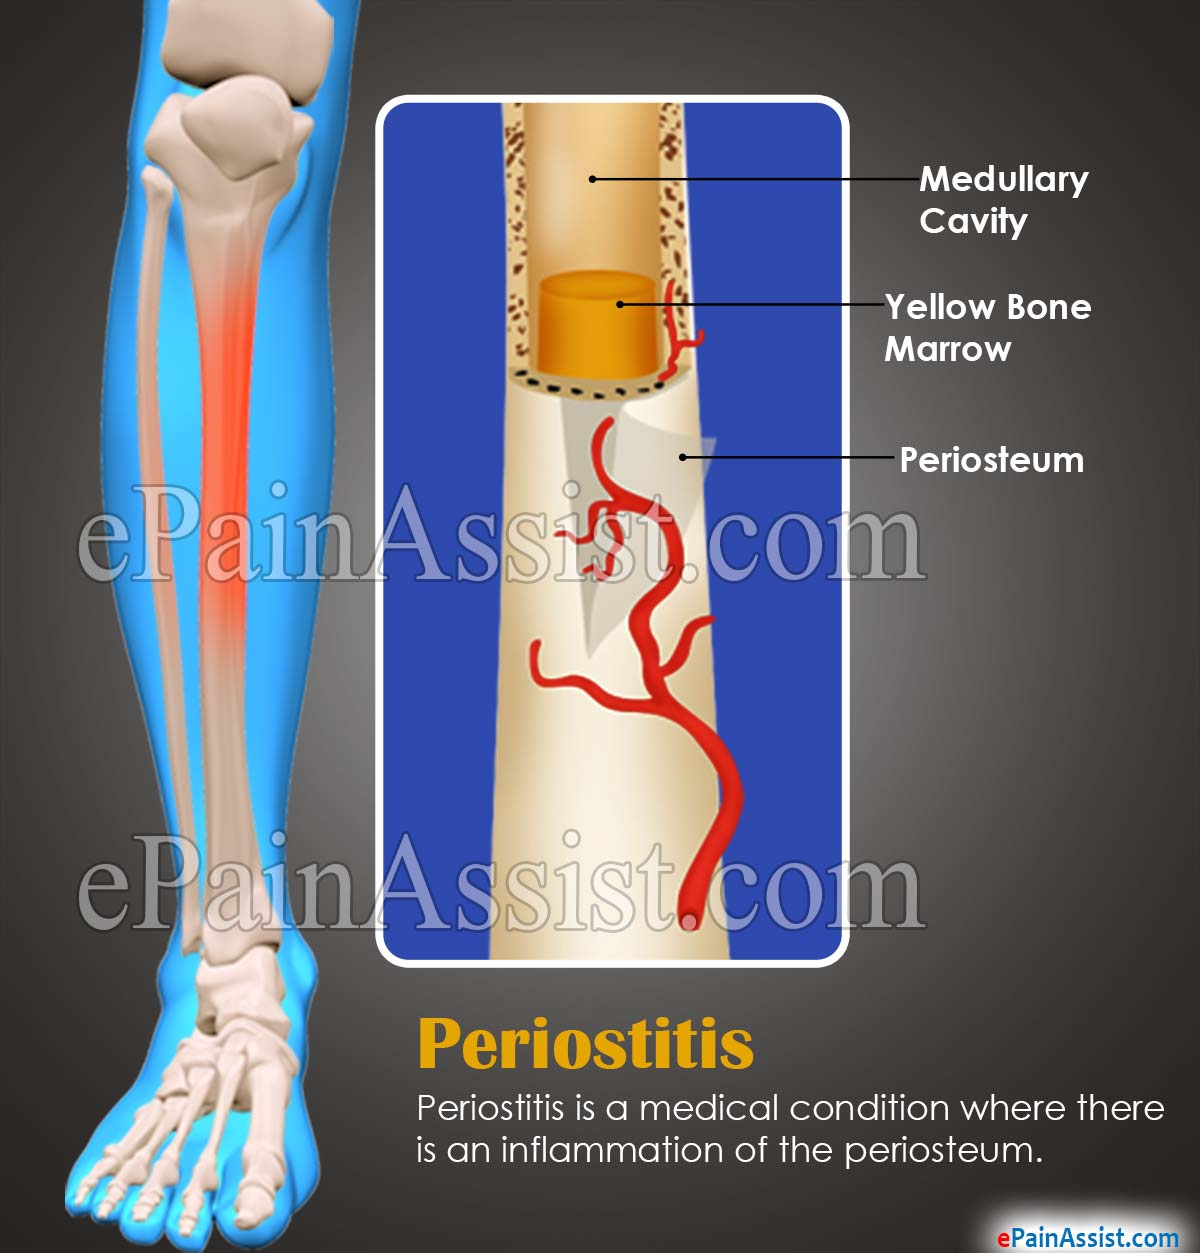 Overview on Periostitis